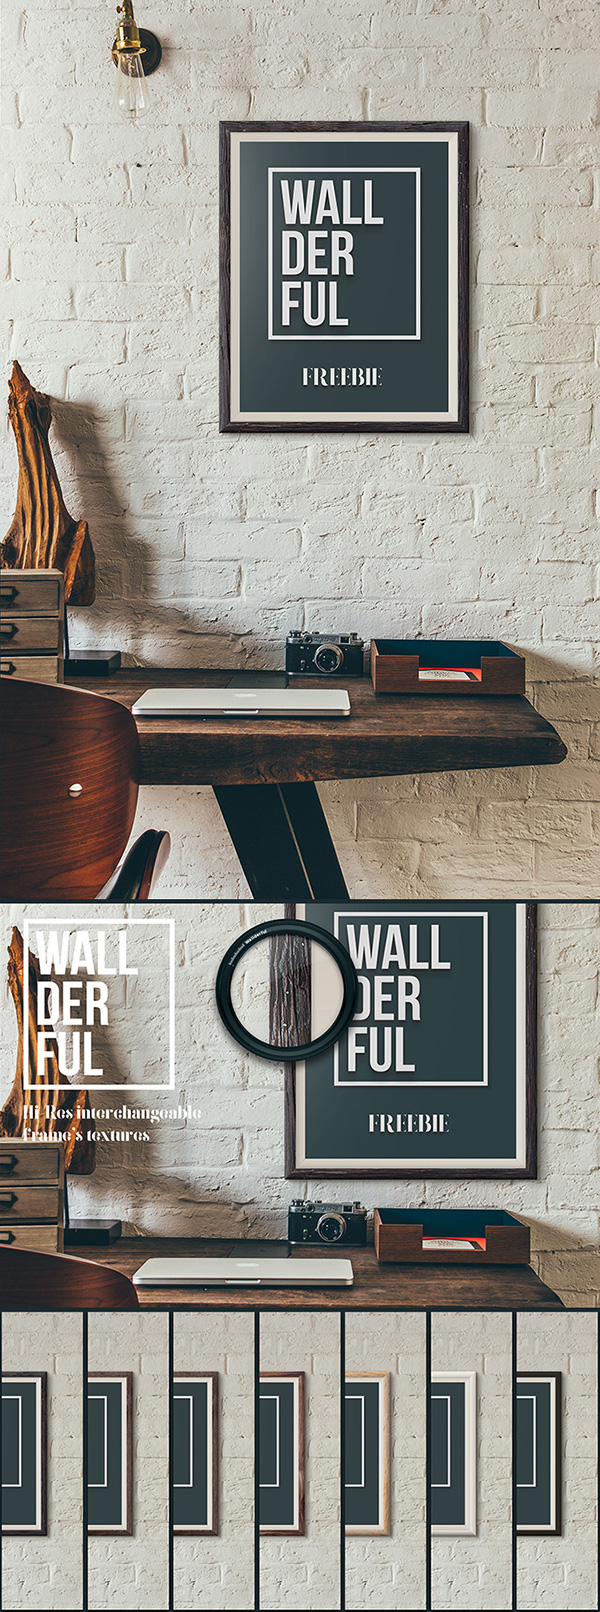 wallderful free frame PSD Free Poster Mock-ups